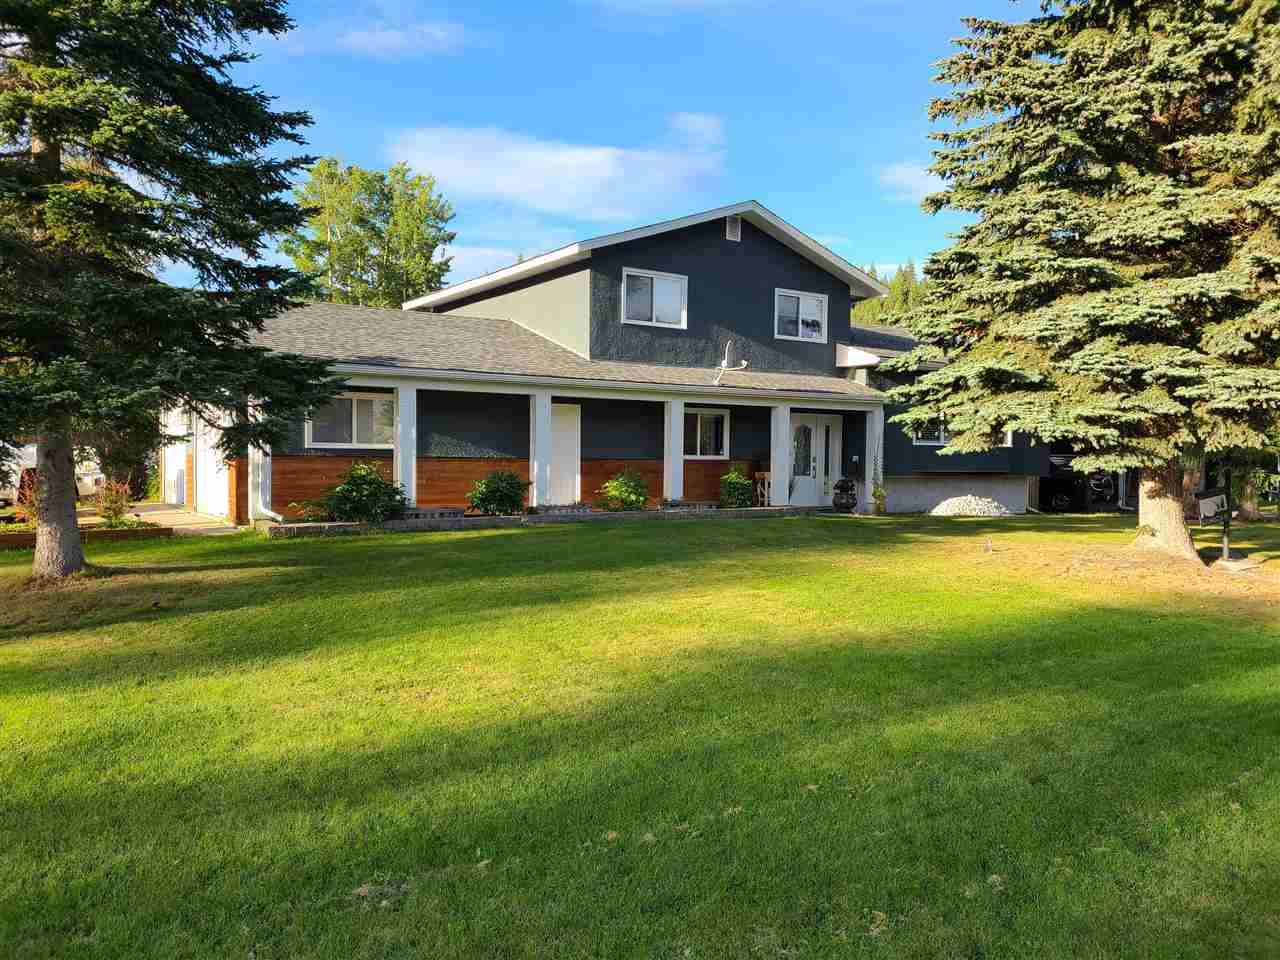 Main Photo: 2490 WINSTON Road in Prince George: Edgewood Terrace House for sale (PG City North (Zone 73))  : MLS®# R2492056